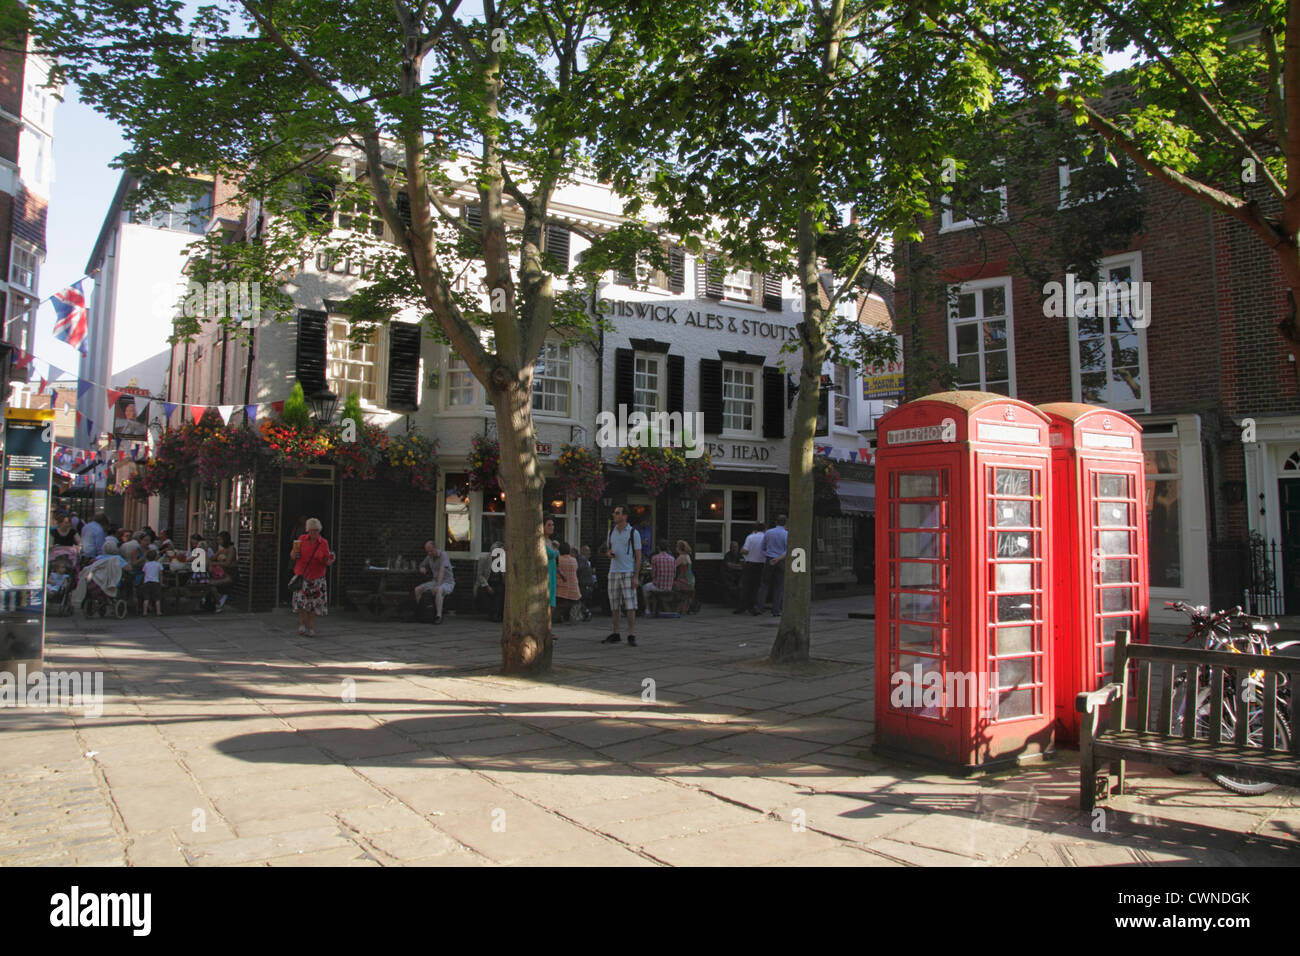 The Princes Head Pub The Green Richmond Upon Thames Surrey - Stock Image